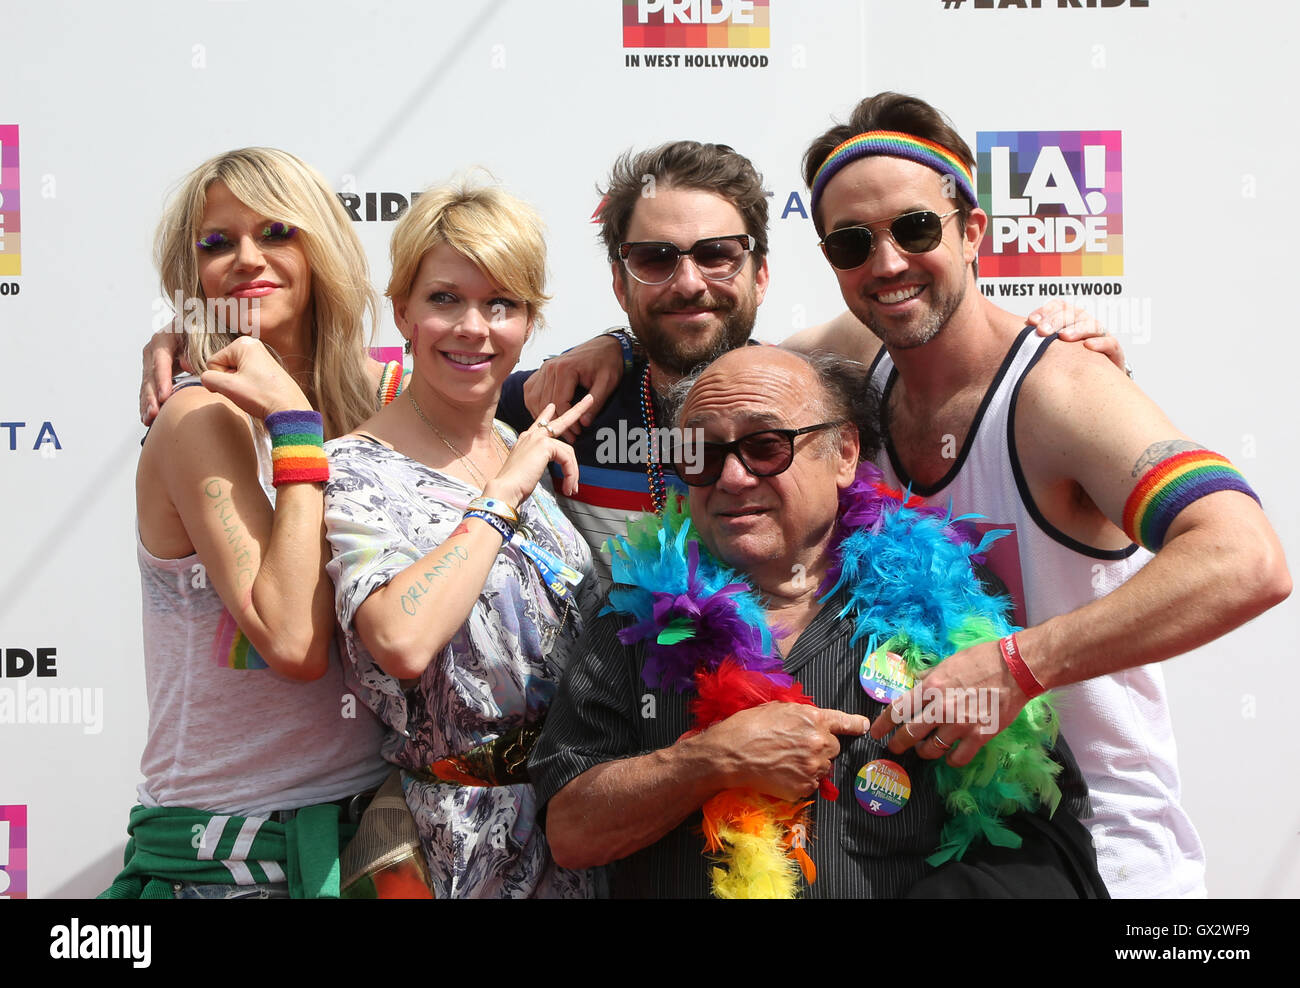 Kaitlin Olson And Rob Mcelhenney Wedding.2016 La Pride Festival Day 3 Featuring Danny Devito Charlie Day